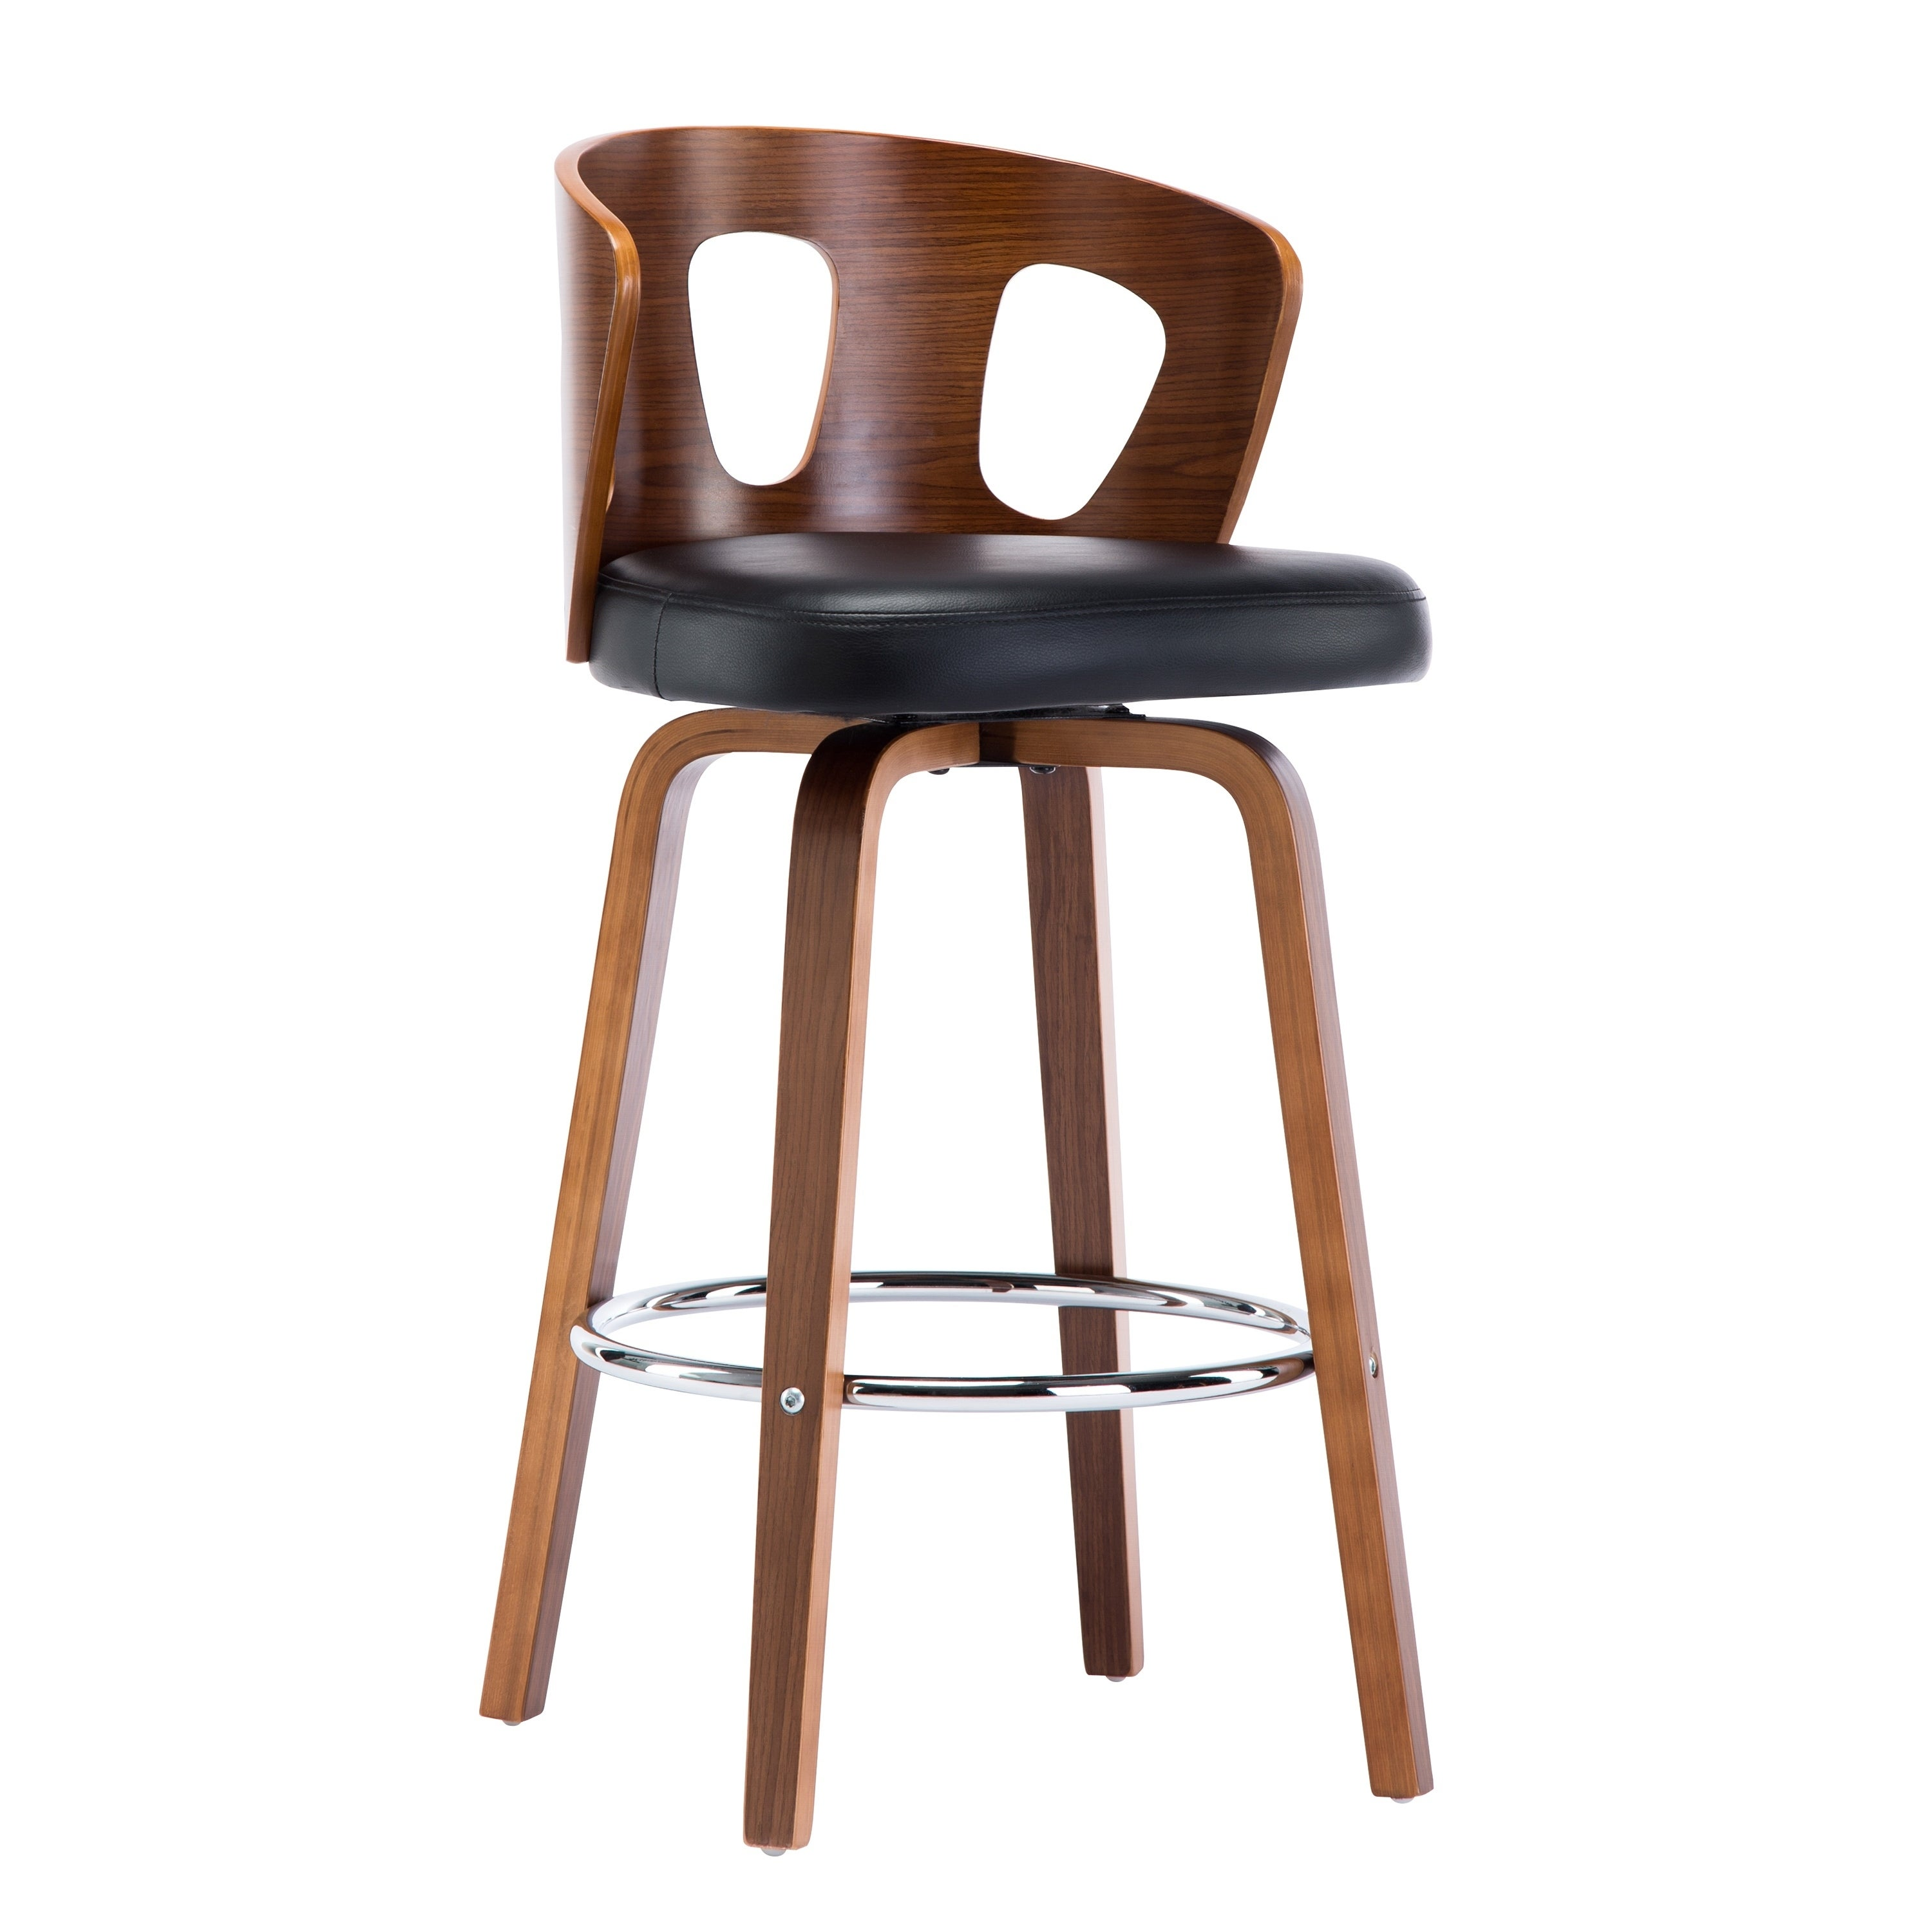 Surprising Mid Century Black Faux Leather Wood Swivel Counter Stool Cjindustries Chair Design For Home Cjindustriesco